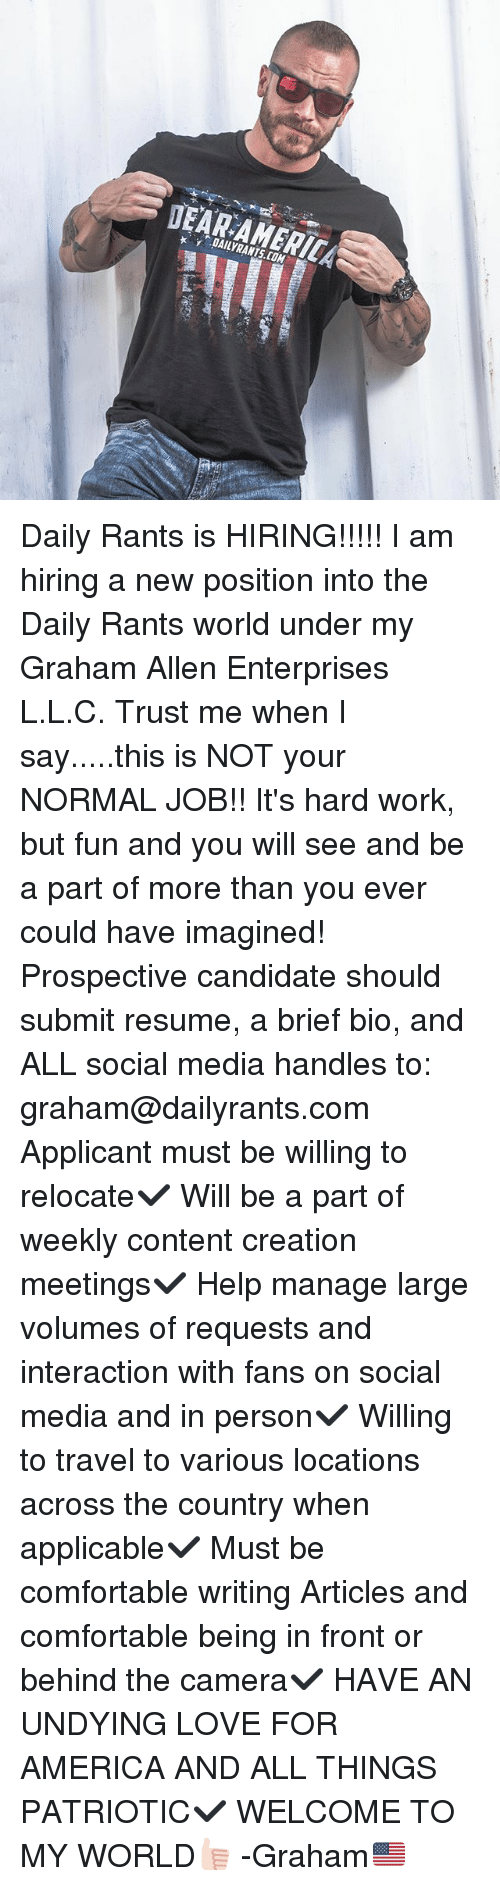 hardly working: DAILYRANTS.COM Daily Rants is HIRING!!!!! I am hiring a new position into the Daily Rants world under my Graham Allen Enterprises L.L.C. Trust me when I say.....this is NOT your NORMAL JOB!! It's hard work, but fun and you will see and be a part of more than you ever could have imagined! Prospective candidate should submit resume, a brief bio, and ALL social media handles to: graham@dailyrants.com Applicant must be willing to relocate✔️ Will be a part of weekly content creation meetings✔️ Help manage large volumes of requests and interaction with fans on social media and in person✔️ Willing to travel to various locations across the country when applicable✔️ Must be comfortable writing Articles and comfortable being in front or behind the camera✔️ HAVE AN UNDYING LOVE FOR AMERICA AND ALL THINGS PATRIOTIC✔️ WELCOME TO MY WORLD👍🏻 -Graham🇺🇸